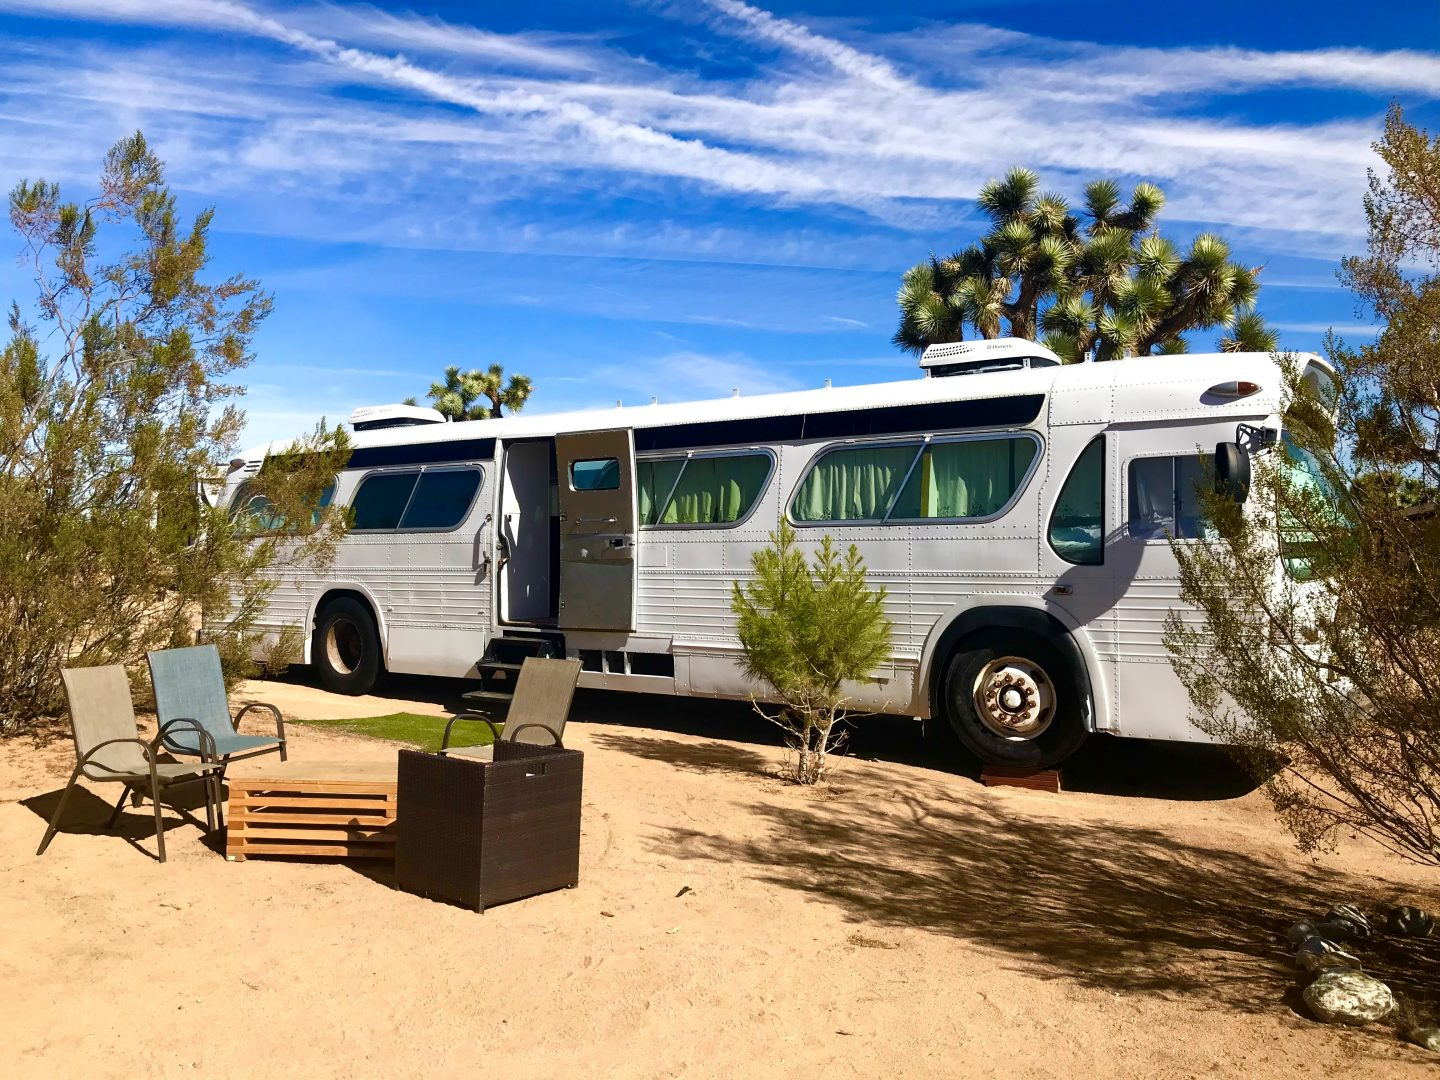 tiny travel chick national park glamping bus